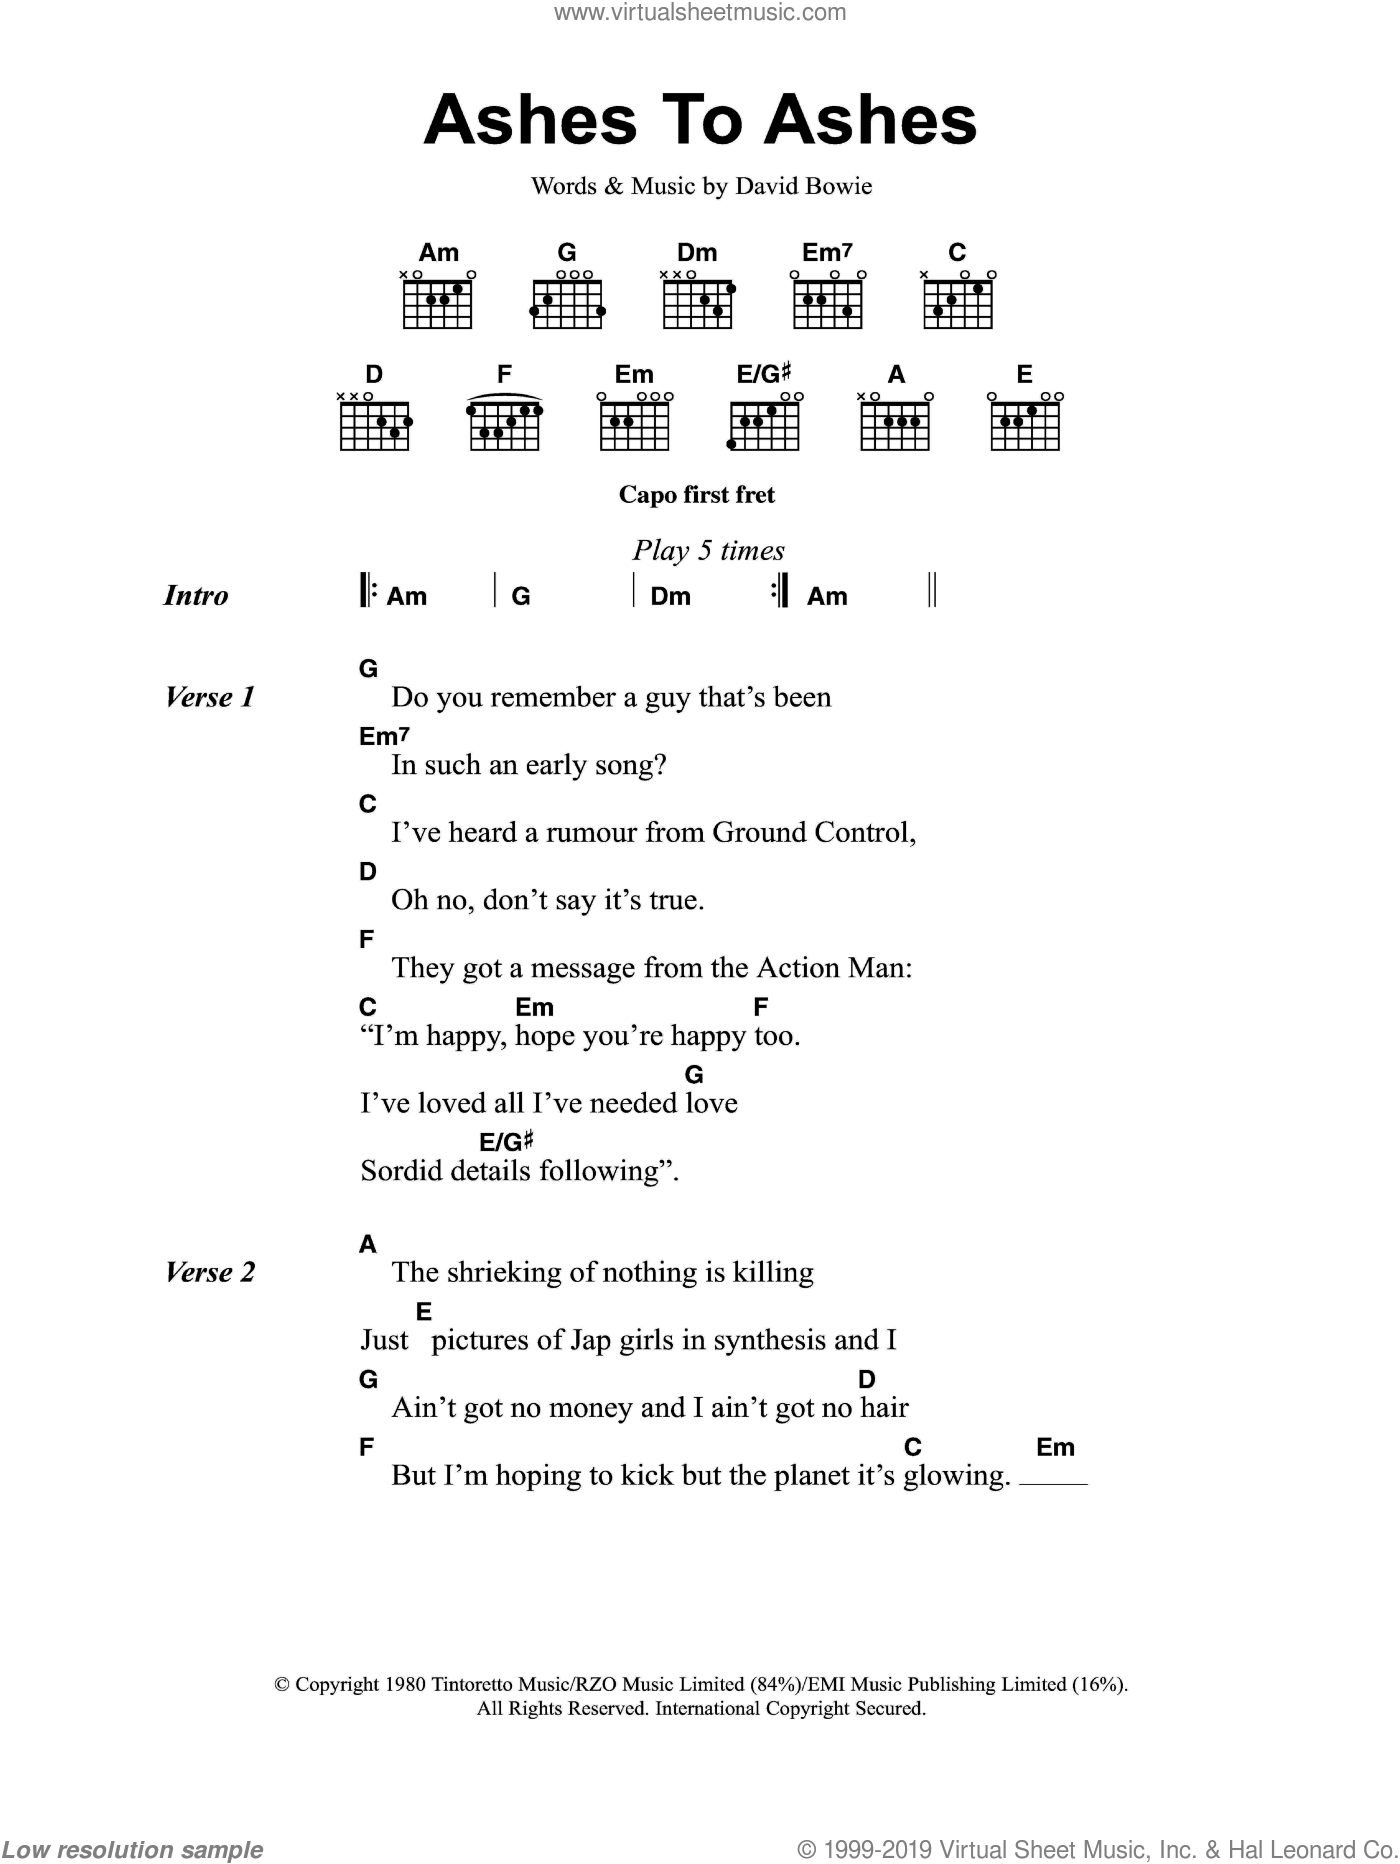 Bowie - Ashes To Ashes sheet music for guitar (chords) [PDF]